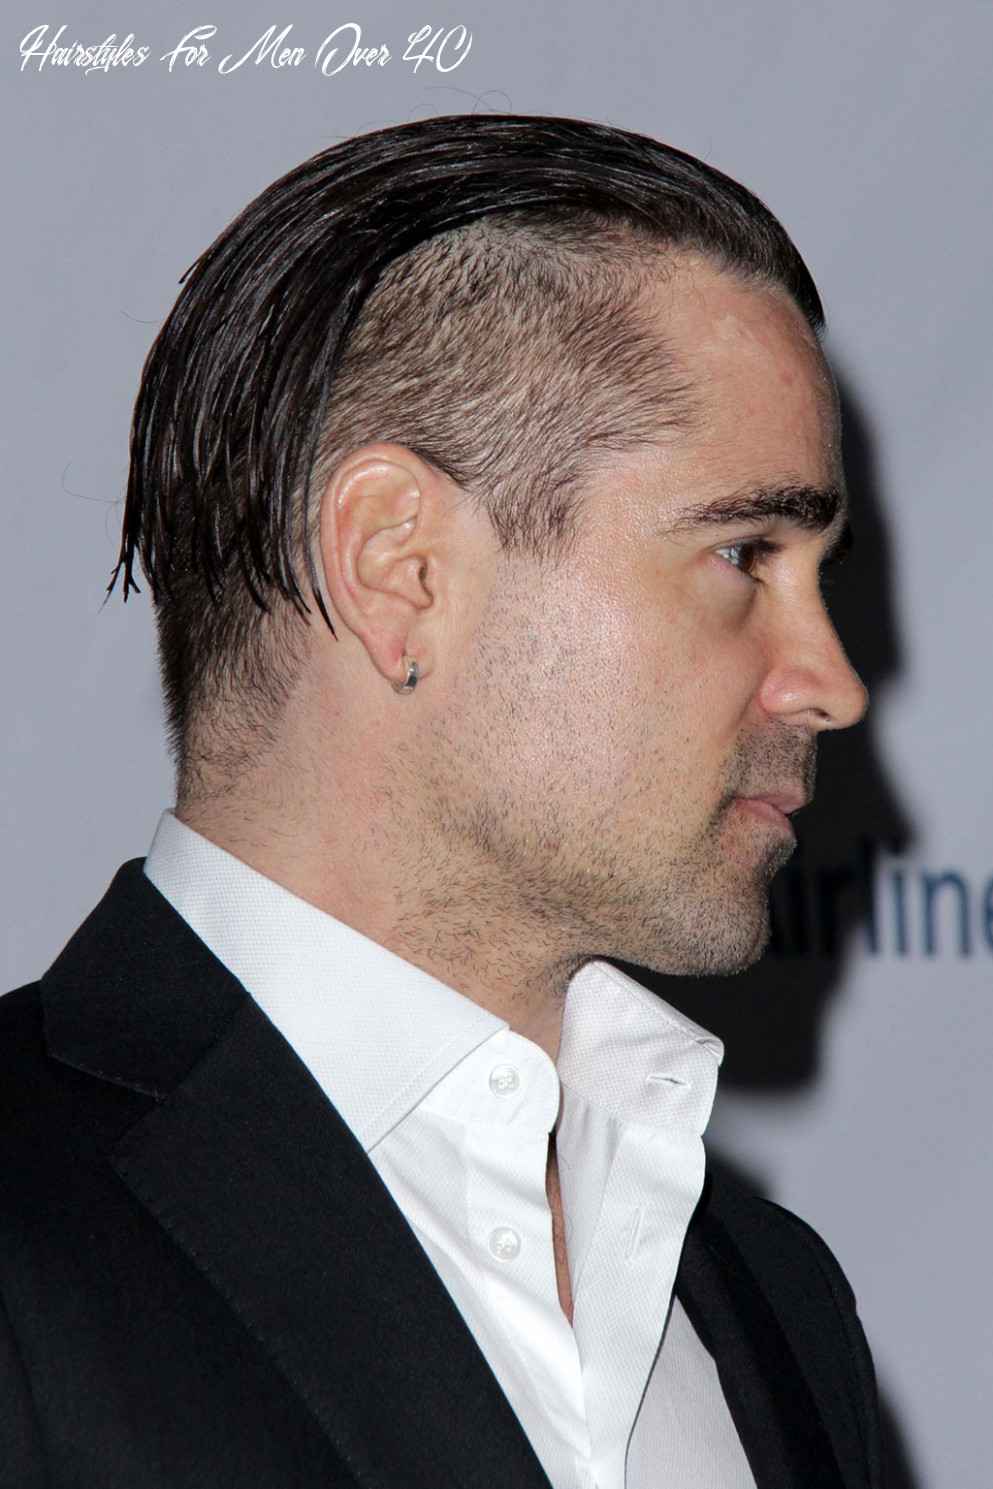 The best and worst hairstyles for men in their 8s | best life hairstyles for men over 40